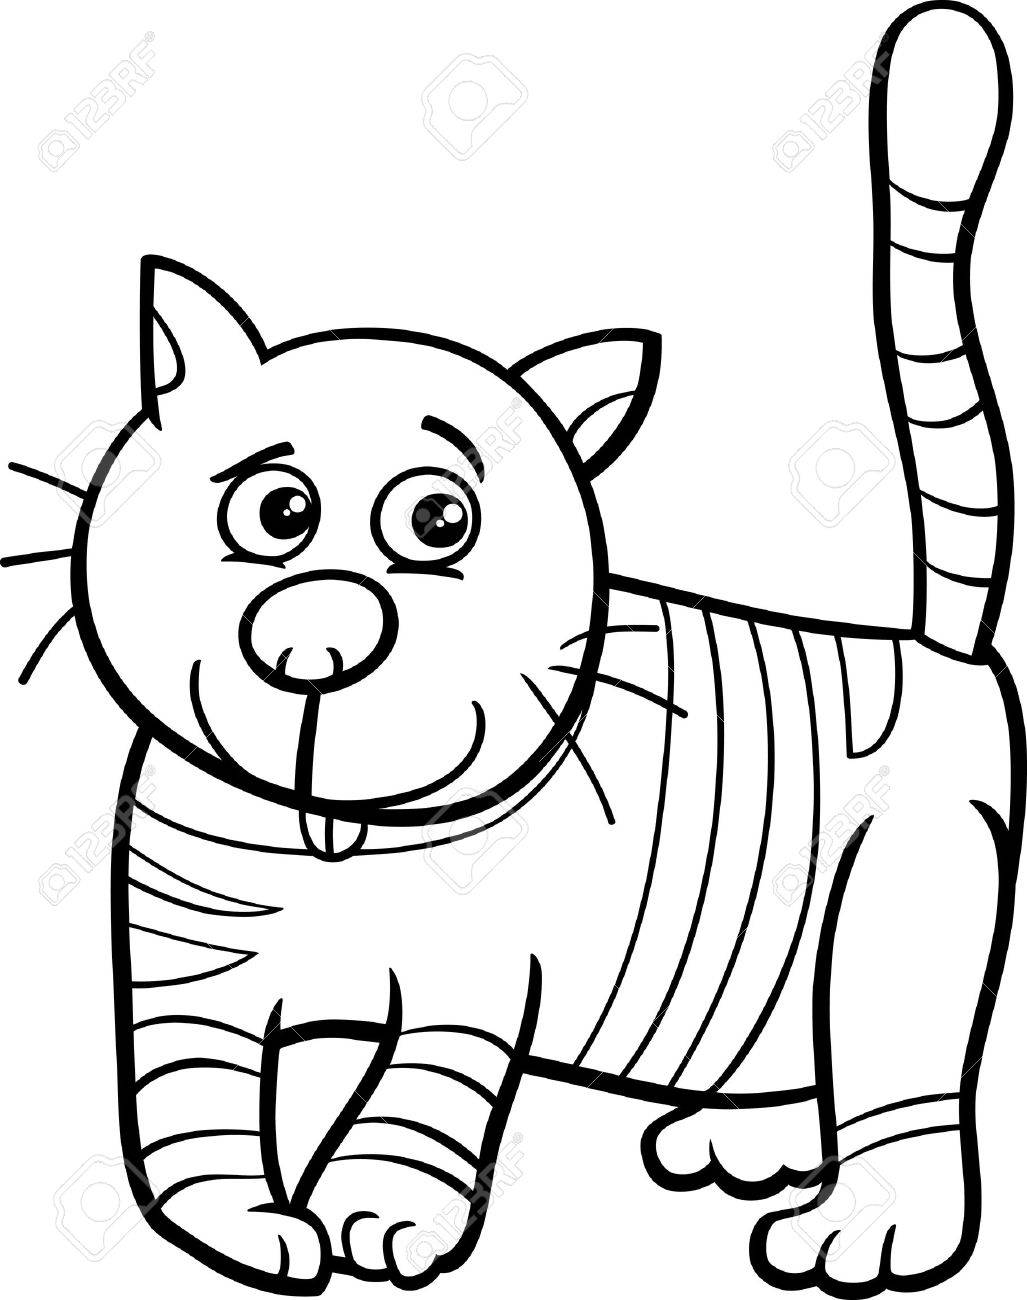 Black And White Cartoon Illustration Of Funny Cat Or Kitten For ...